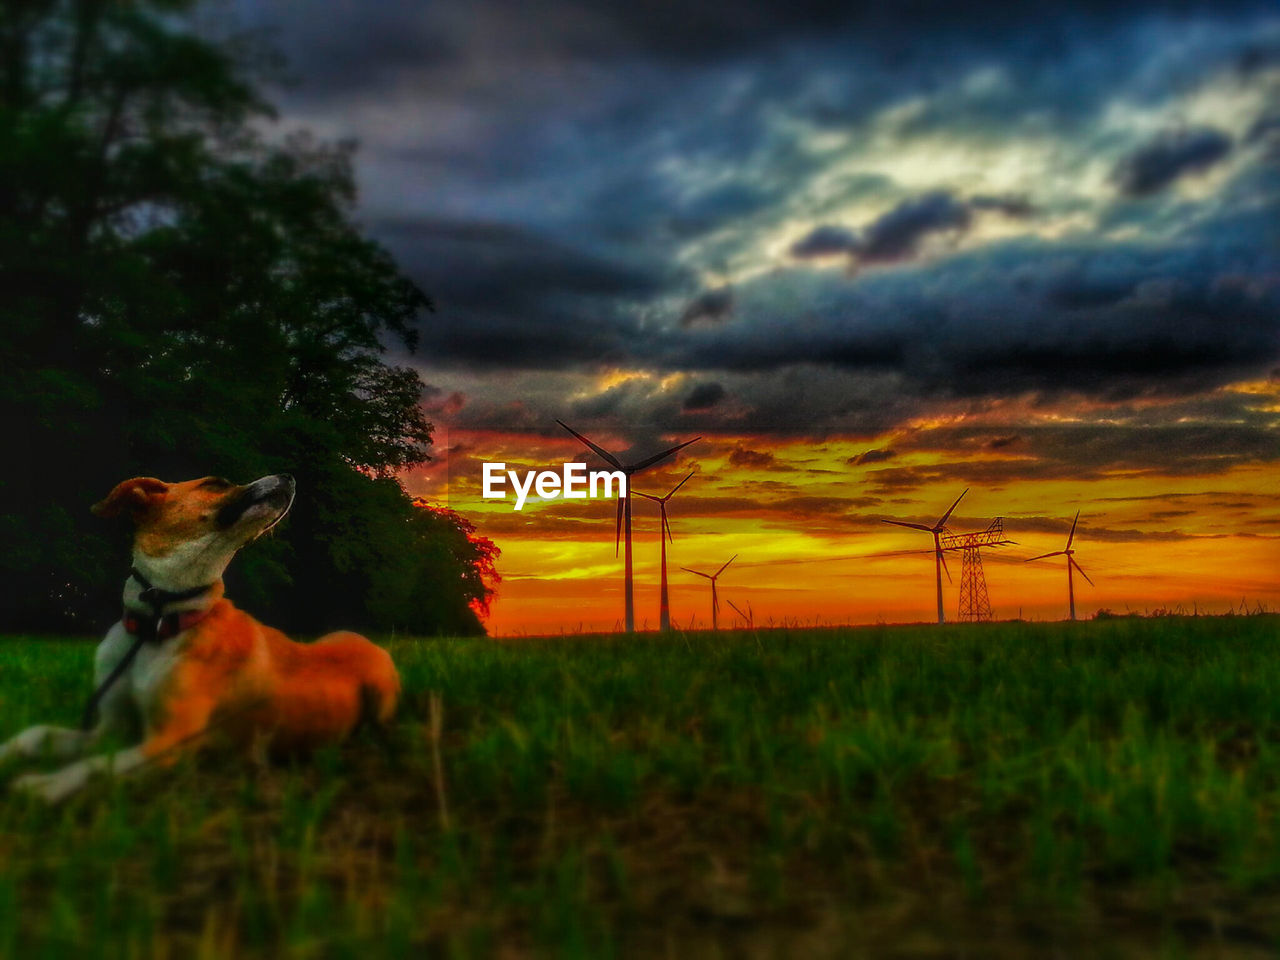 sunset, cloud - sky, alternative energy, sky, wind power, wind turbine, orange color, domestic animals, environmental conservation, nature, animal themes, no people, dramatic sky, one animal, field, mammal, outdoors, dusk, grass, fuel and power generation, windmill, landscape, storm cloud, beauty in nature, pets, rural scene, electricity pylon, technology, industrial windmill, tree, day